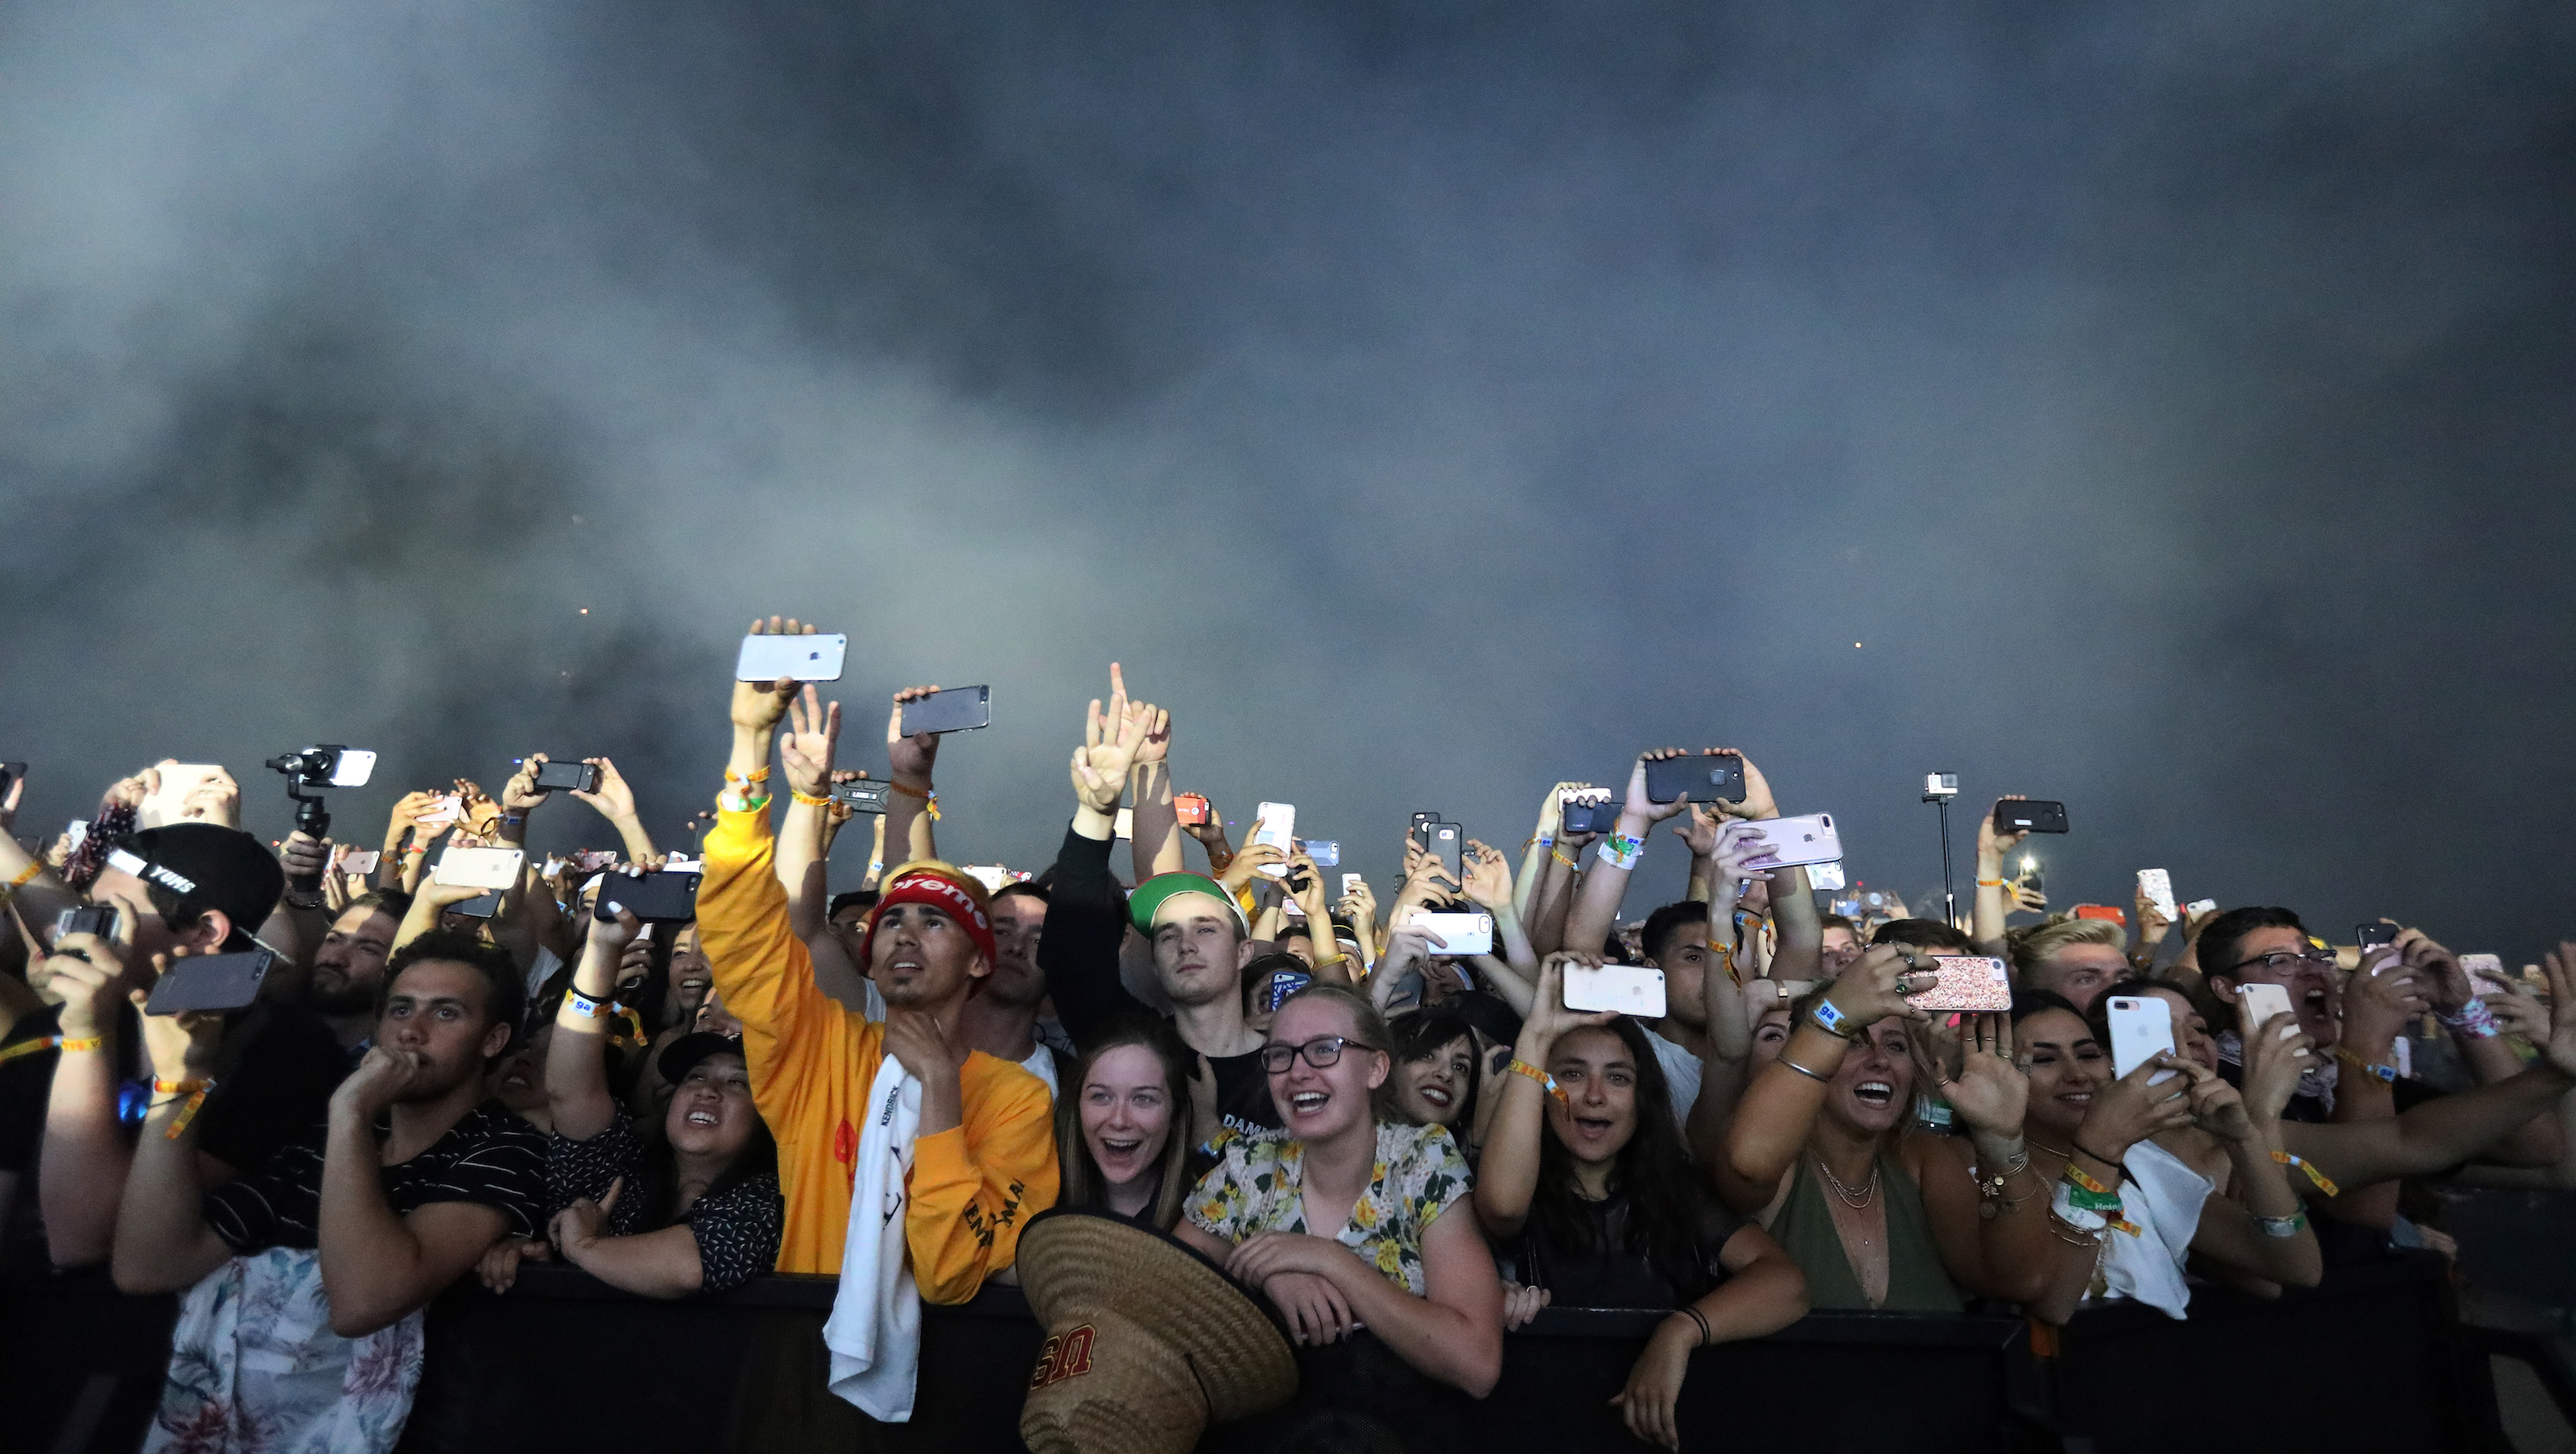 Fans watch as Kendrick Lamar performs during the Coachella Valley Music and Arts Festival in Indio, California, U.S. April 16, 2017.  Picture taken April 16, 2017.   REUTERS/Carlo Allegri - RTS12LBU